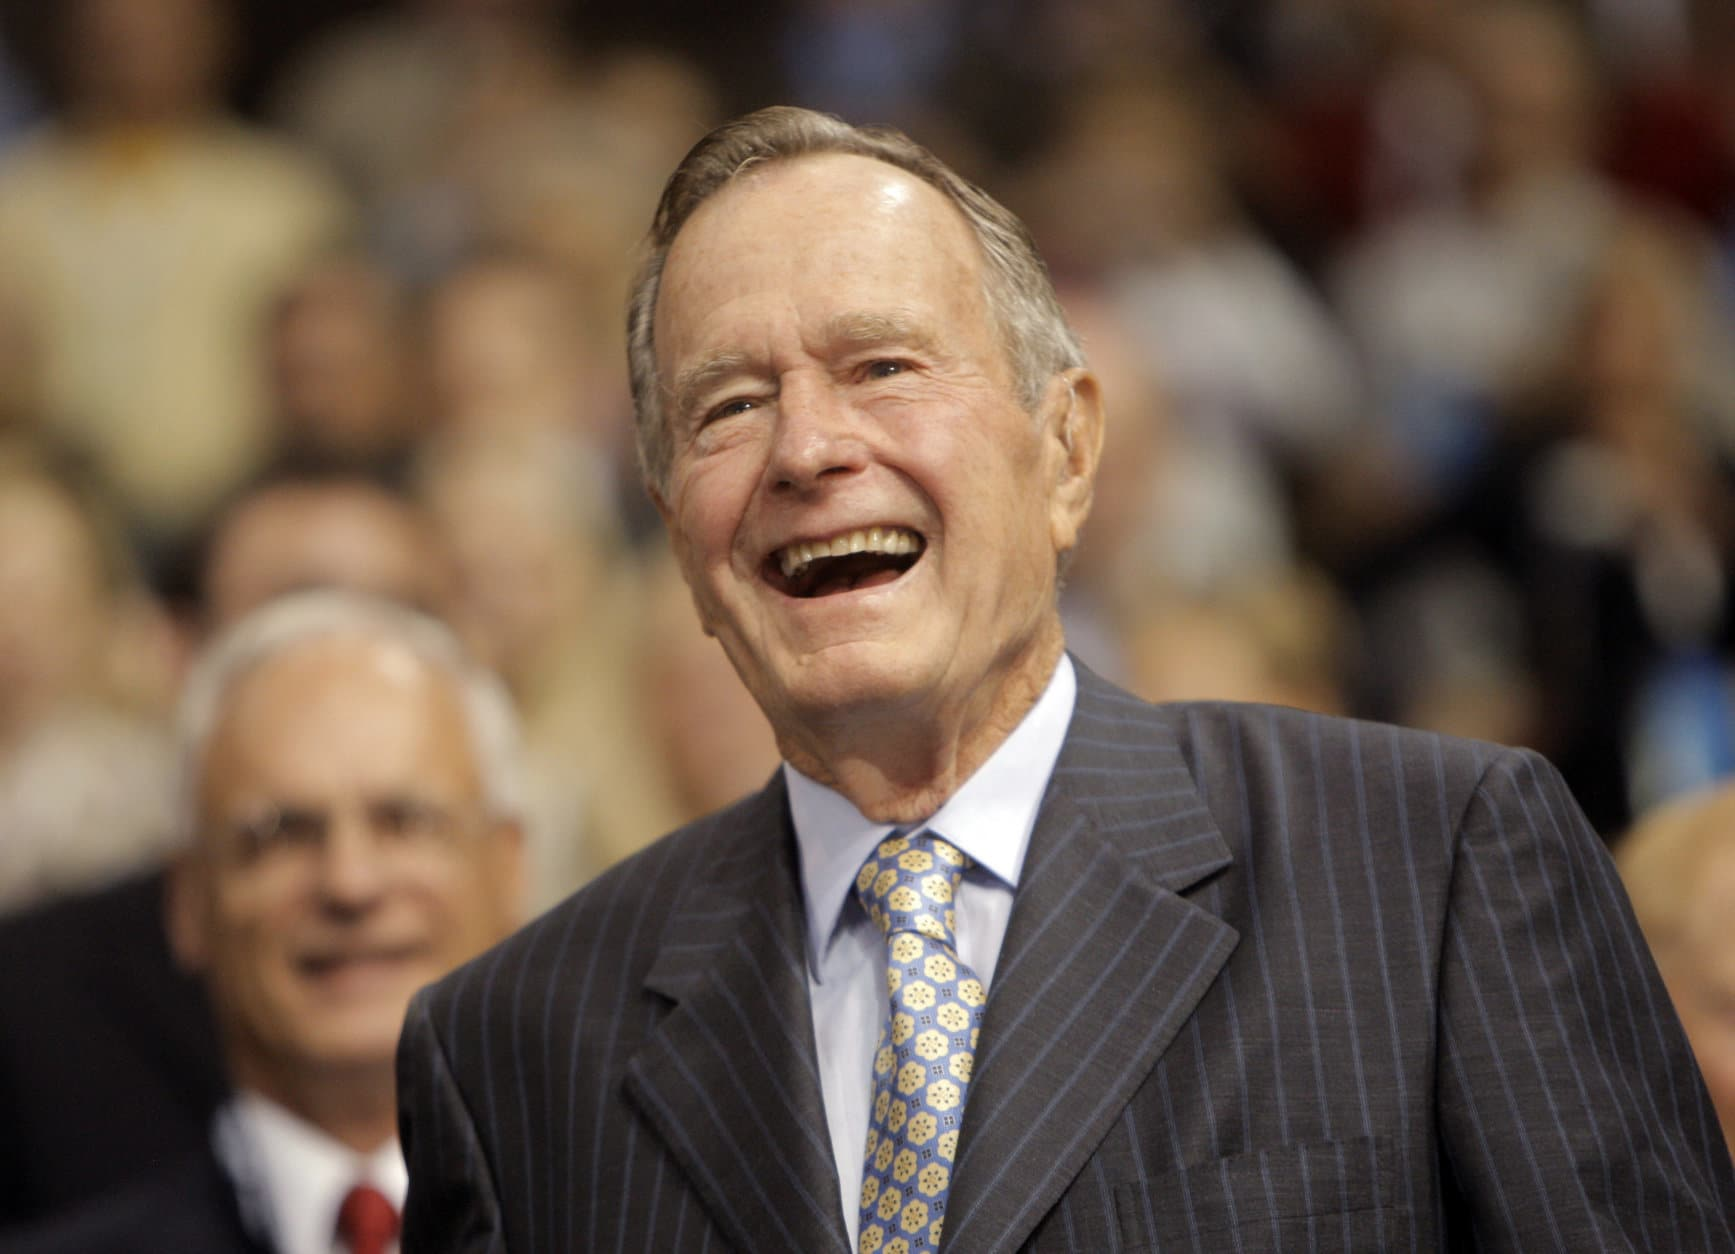 Former President George H.W. Bush smiles as he arrives at the Republican National Convention in St. Paul, Minn., Tuesday, Sept. 2, 2008. (AP Photo/Jae C. Hong)